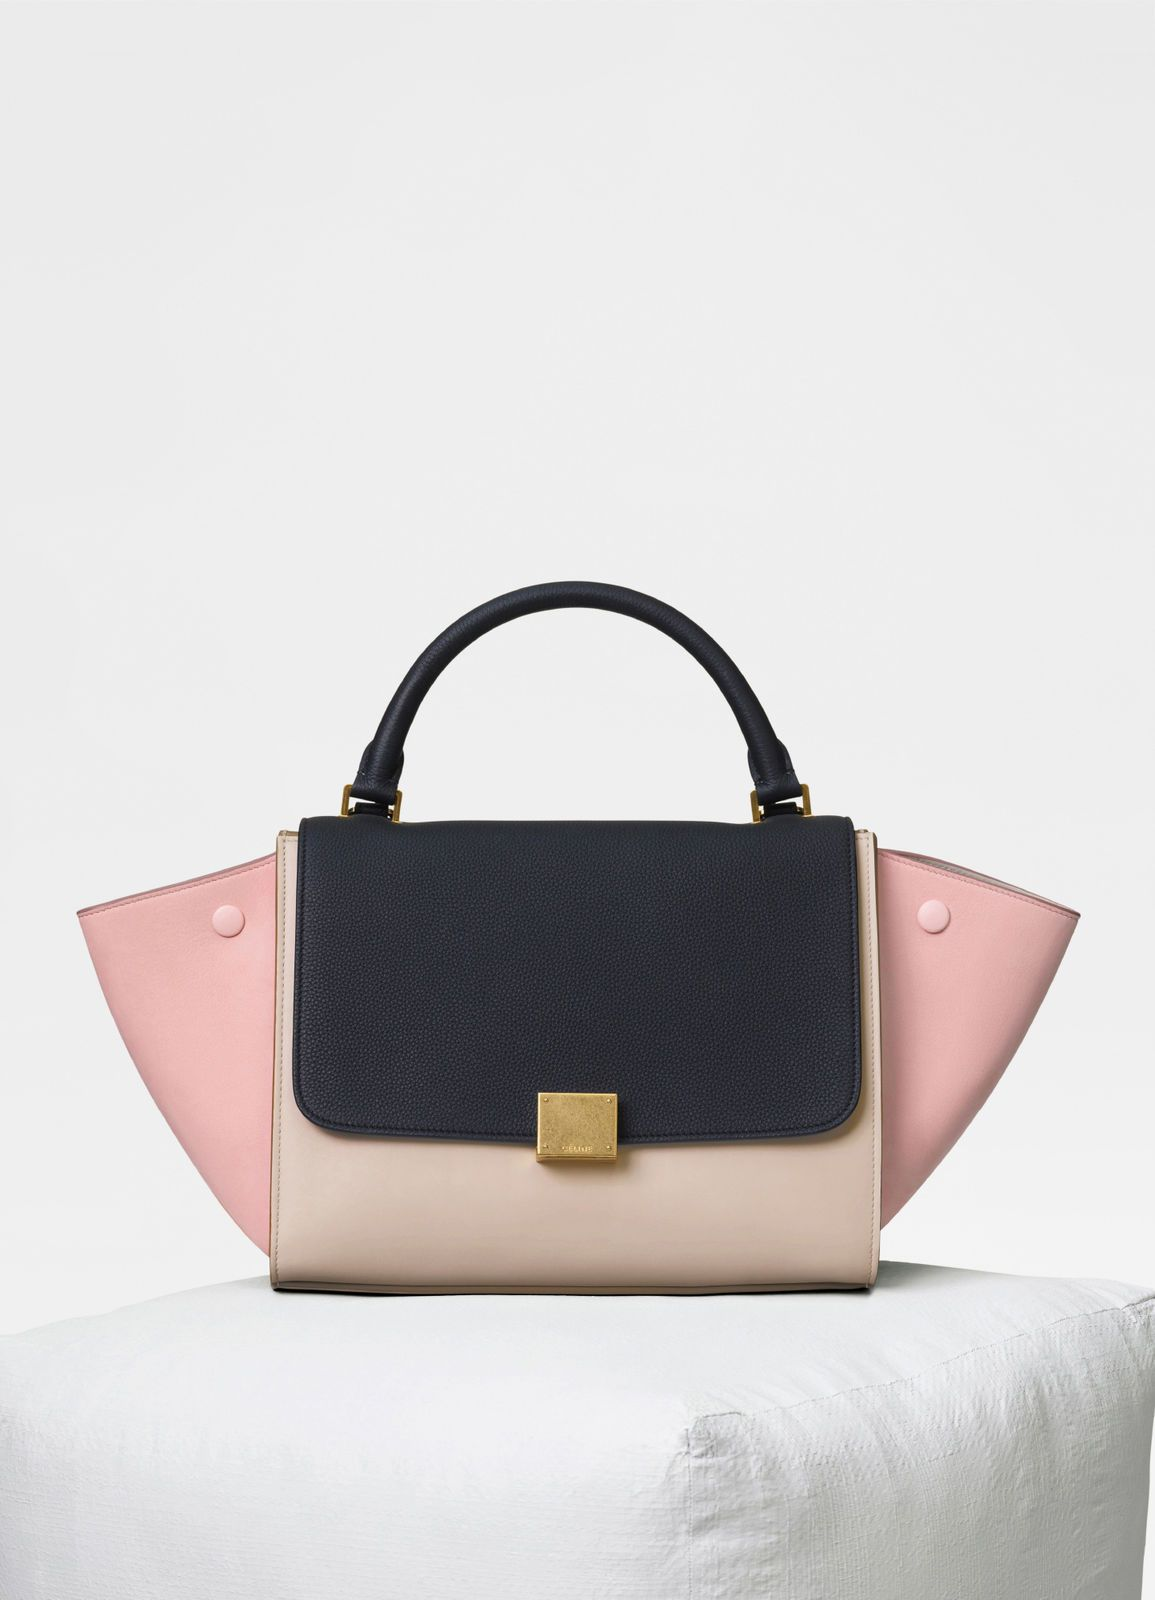 CELINE   Shop the latest collections on the official online store   handbags b7bc9490cf7a0